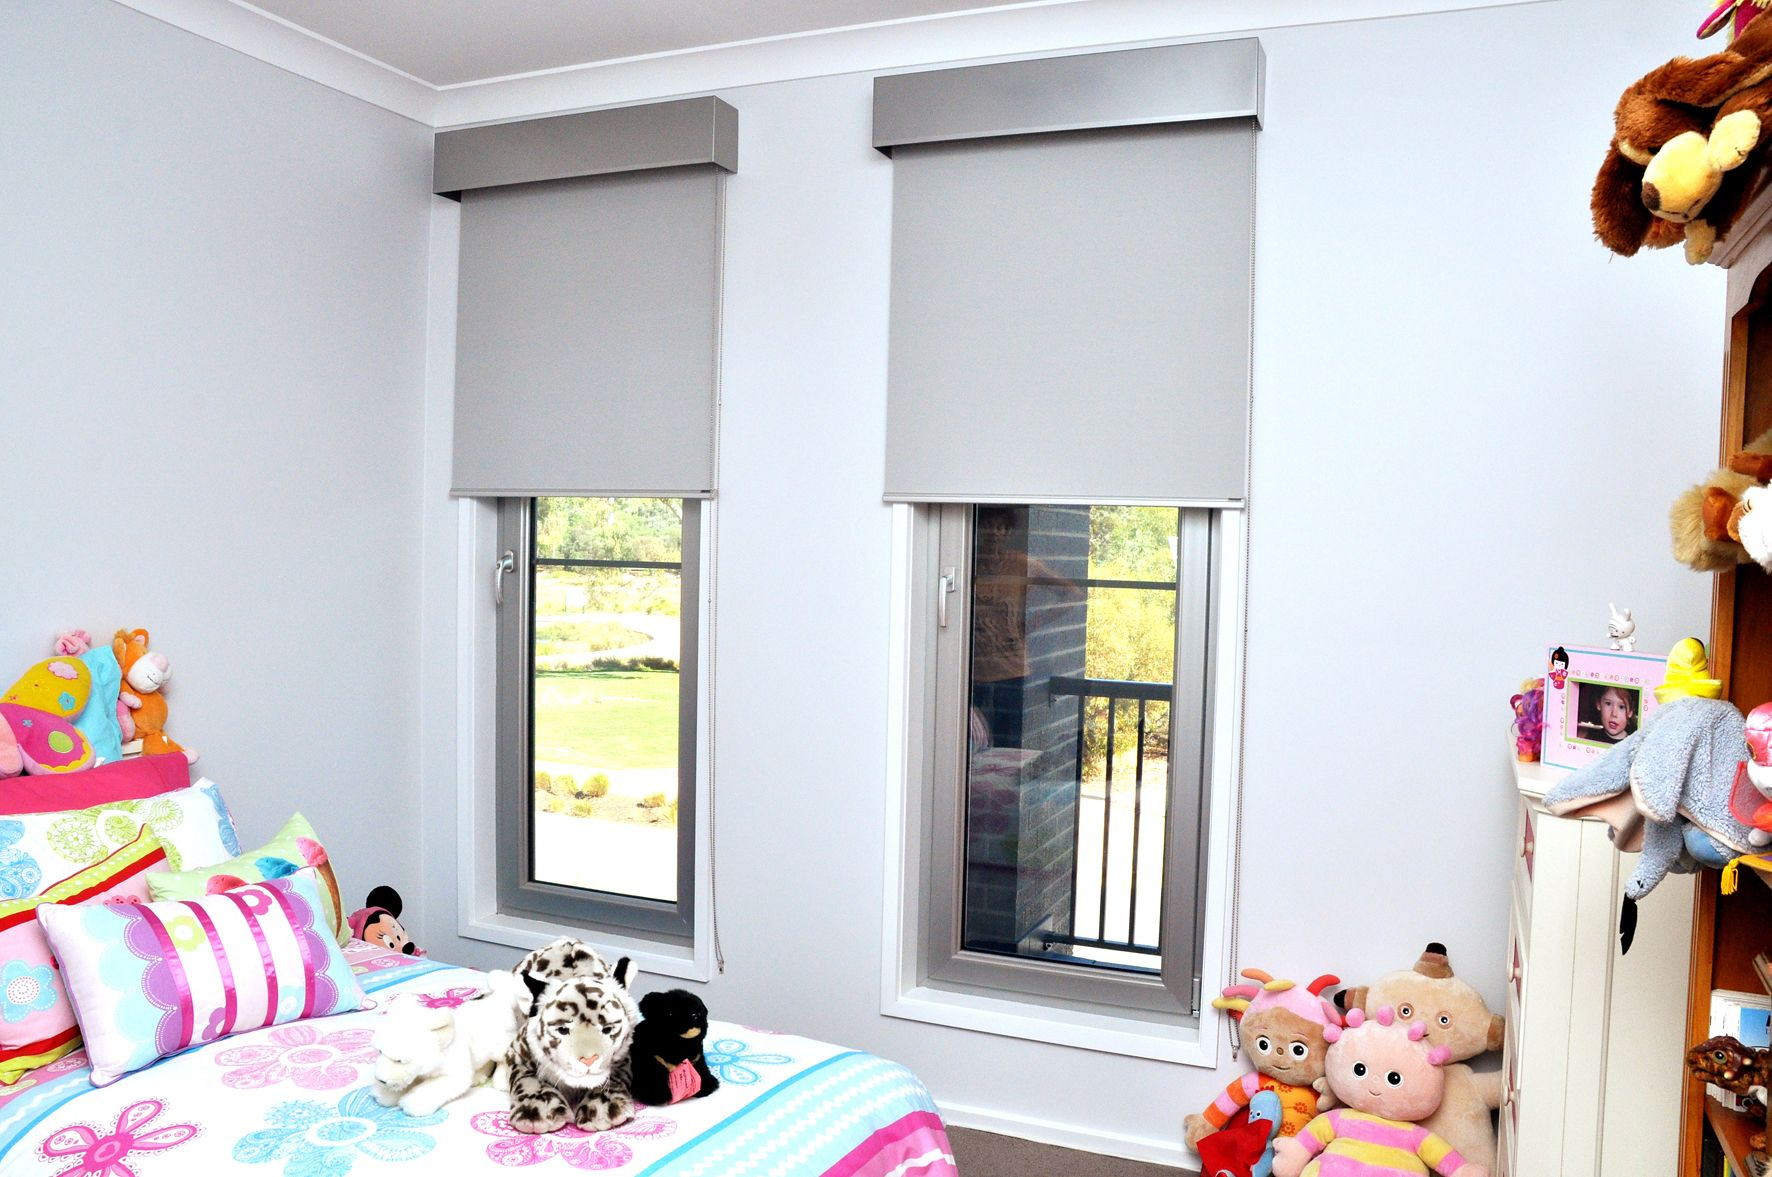 aluminium pelmets with roller blinds childrens room - Blinds For Baby Room